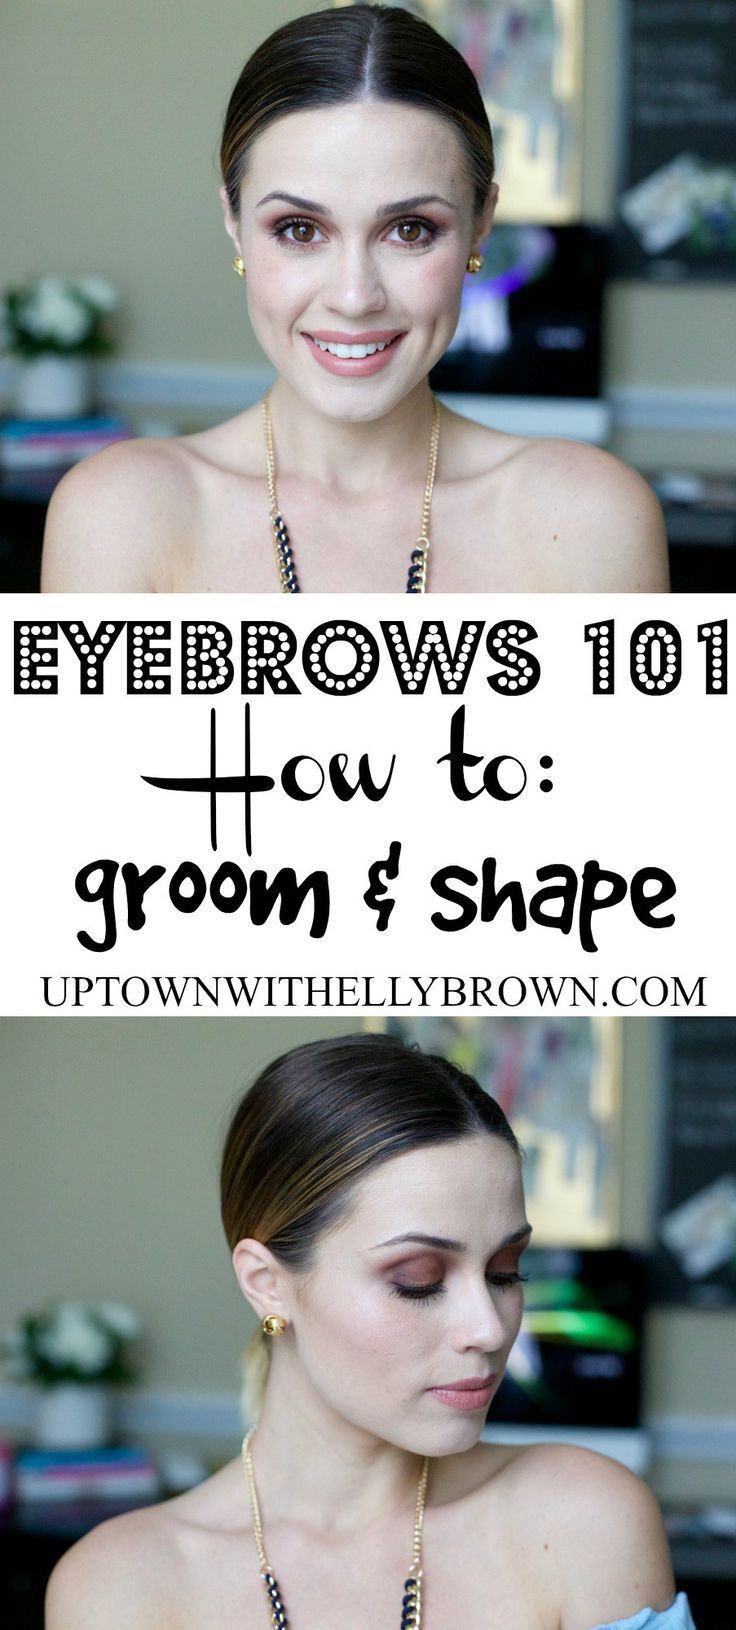 How to groom and shape your eyebrows | eyebrows 101 | Uptown with Elly Brown